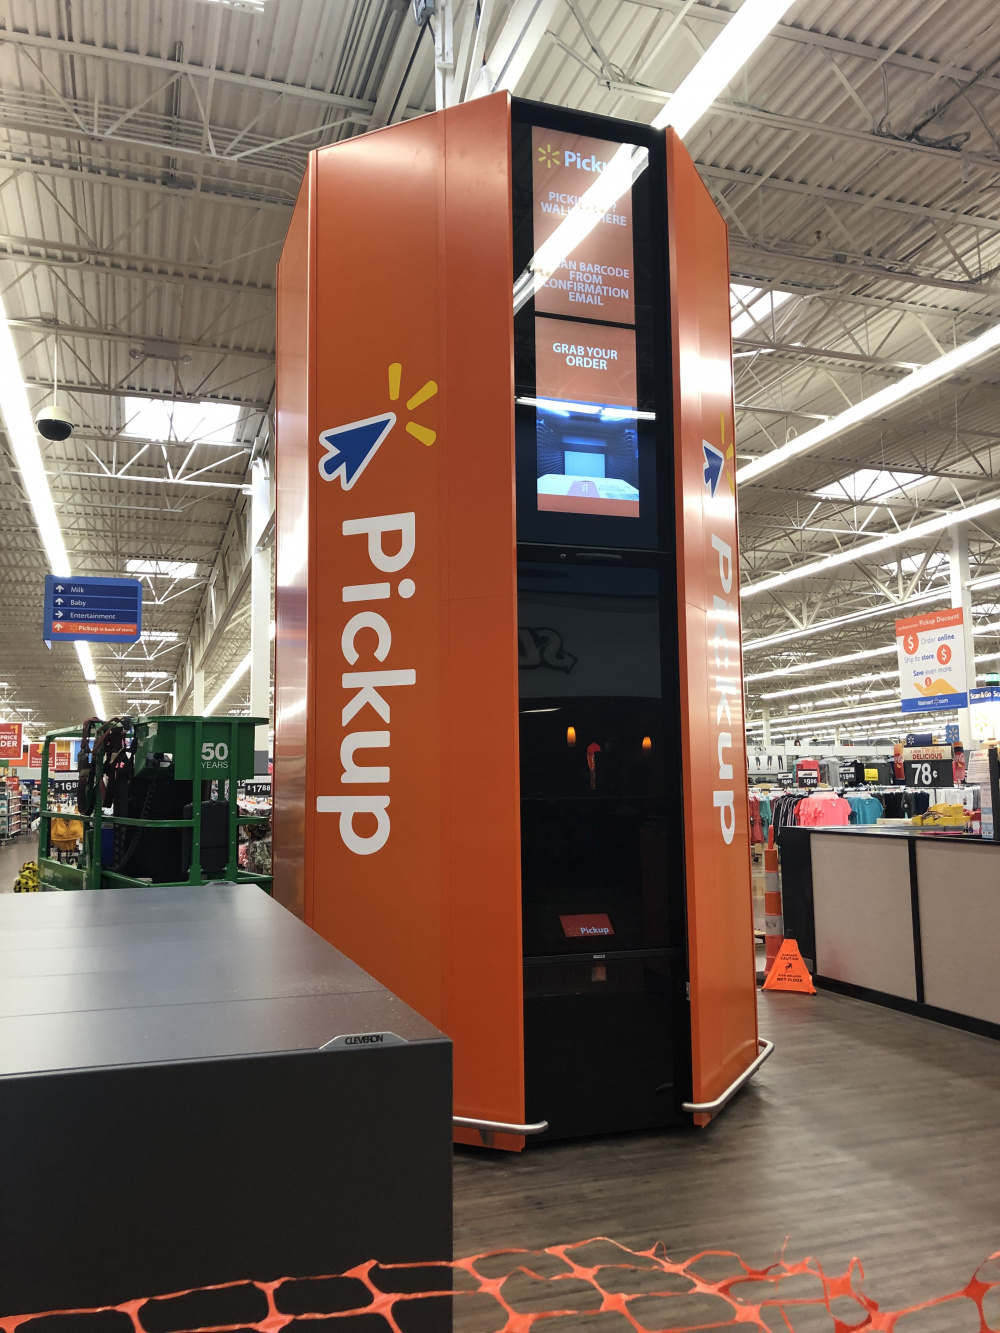 Circleville Walmart Adds 16 Foot Automated Pickup Tower